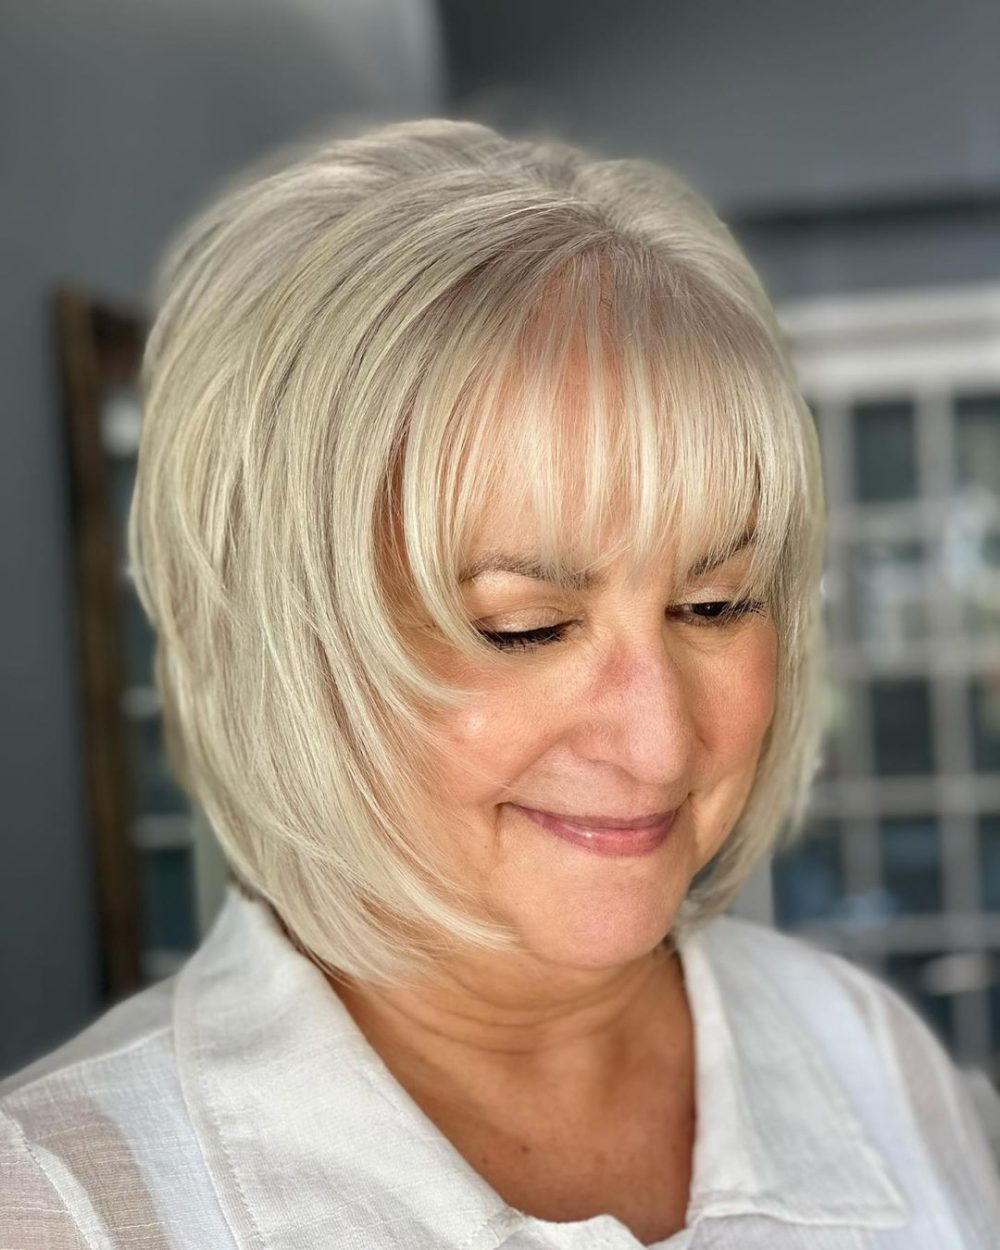 Look Fresh with Short Layered Haircuts for Older Women (Updated 2021) da74f9aacab41904baf664c456fbe98c